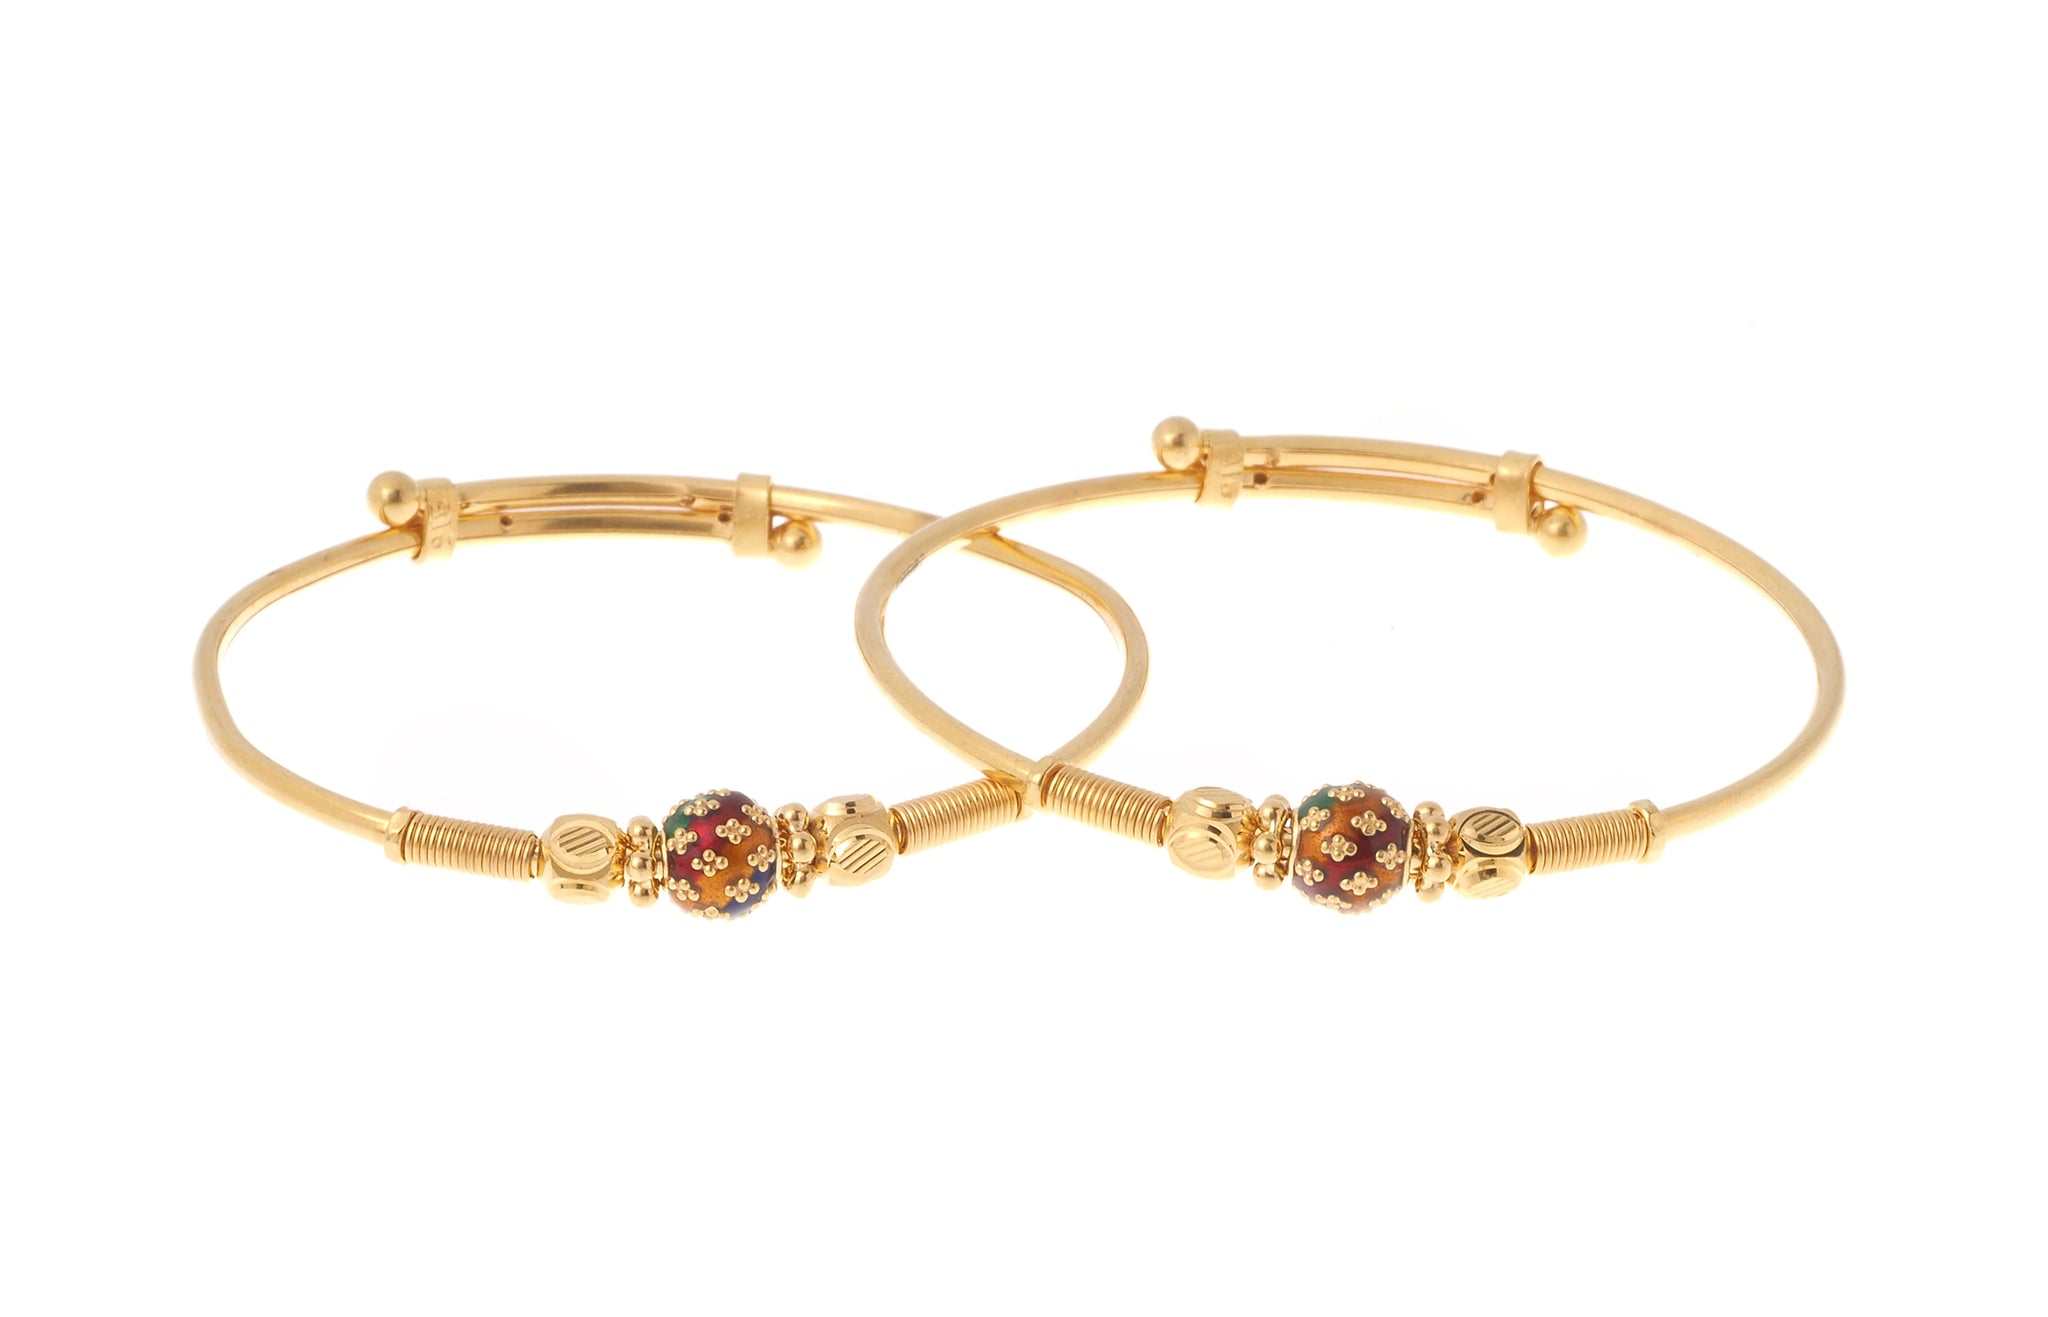 22ct Gold Adjustable Children's Bangles with Diamond Cut and Enamel Design CB-7170